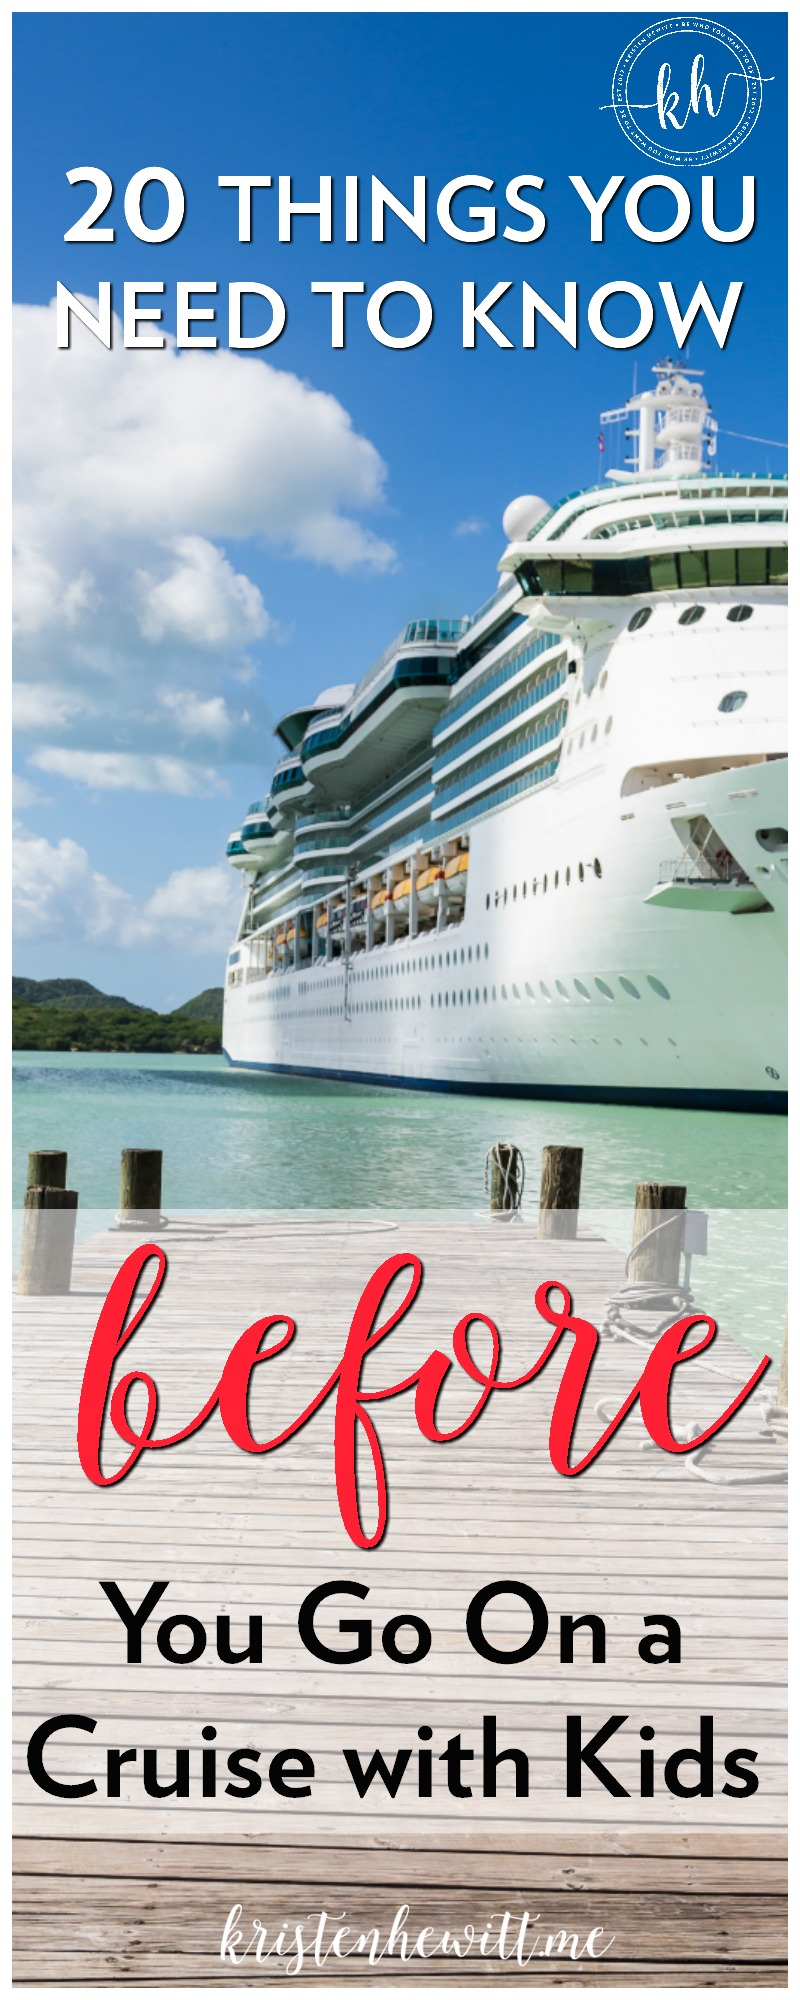 Heading on a cruise with kids? Read this FIRST! 20 things you NEED to know BEFORE you go on a cruise with kids! These travel hacks will save you!